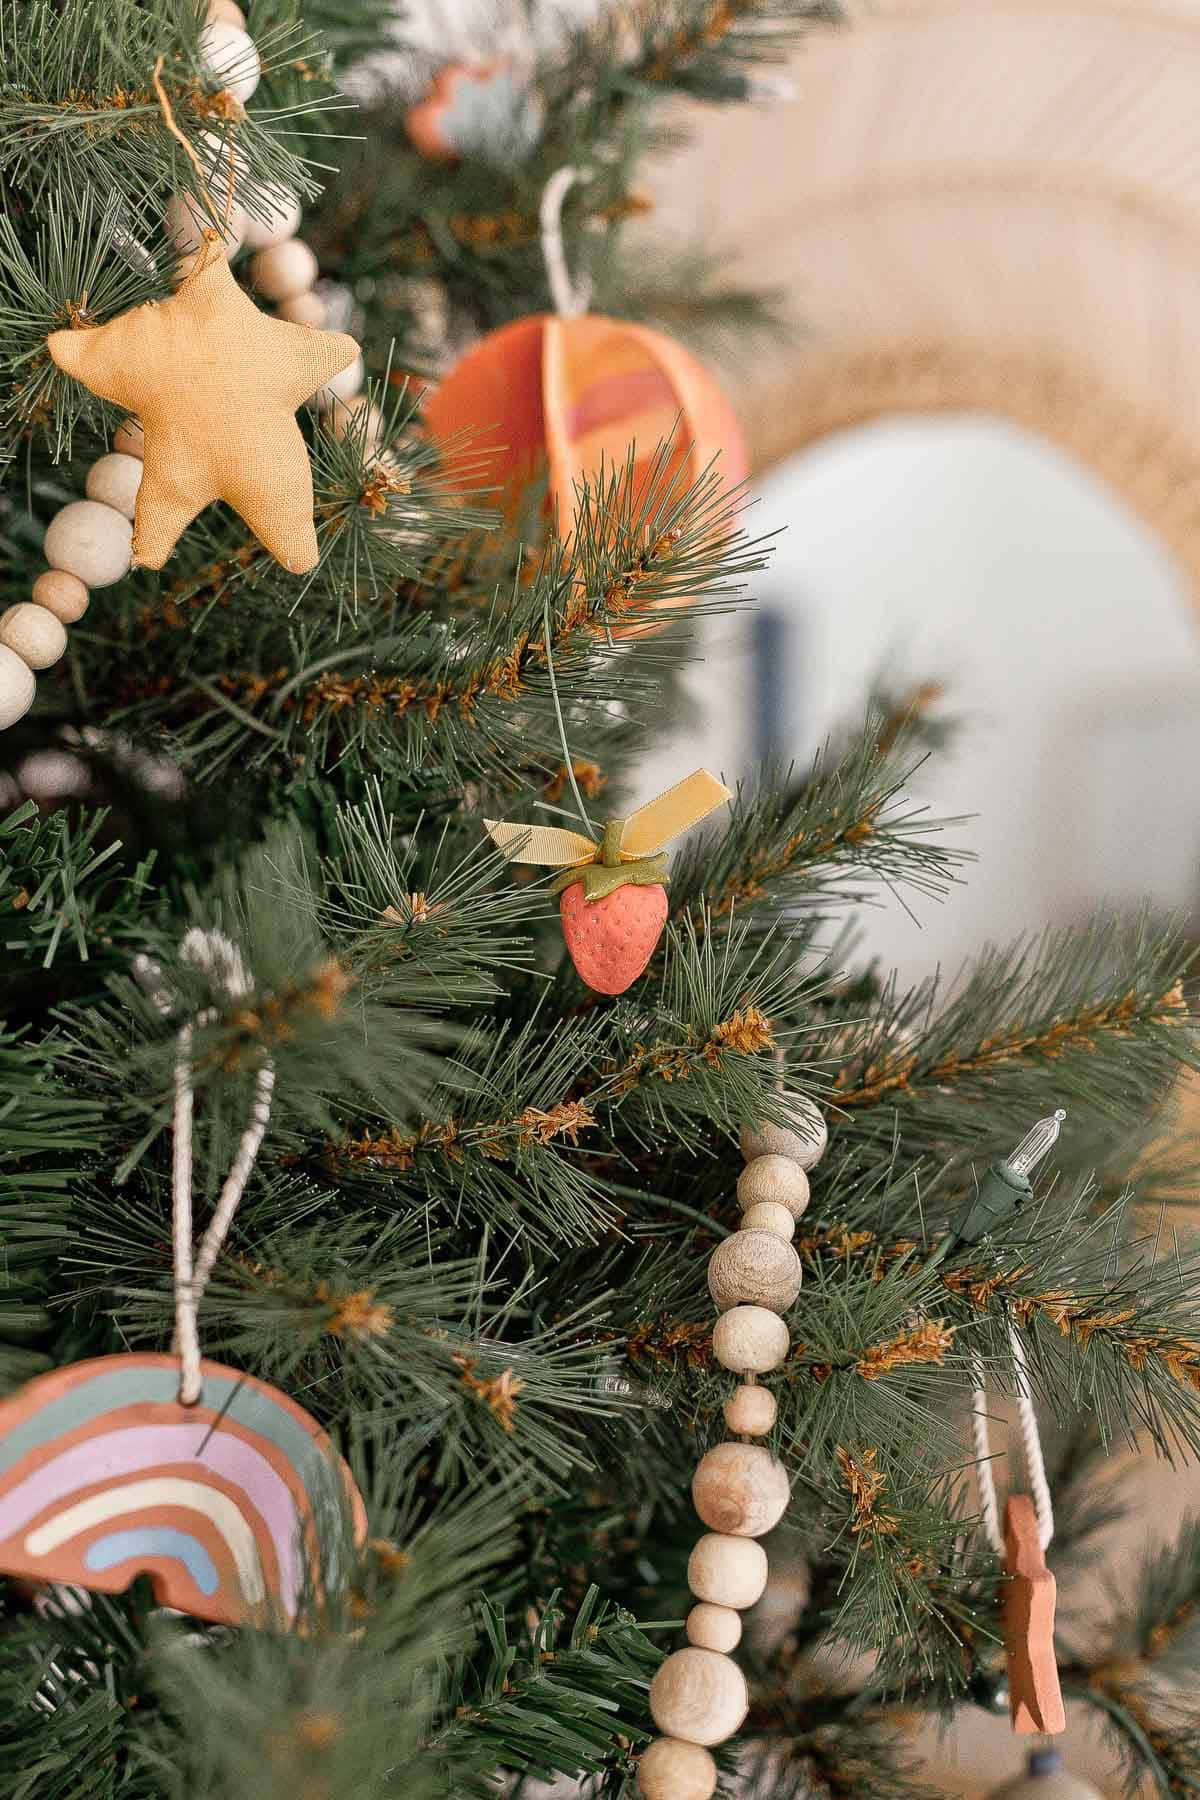 Closeup image of a Christmas tree with handmade ornaments and wood garland.